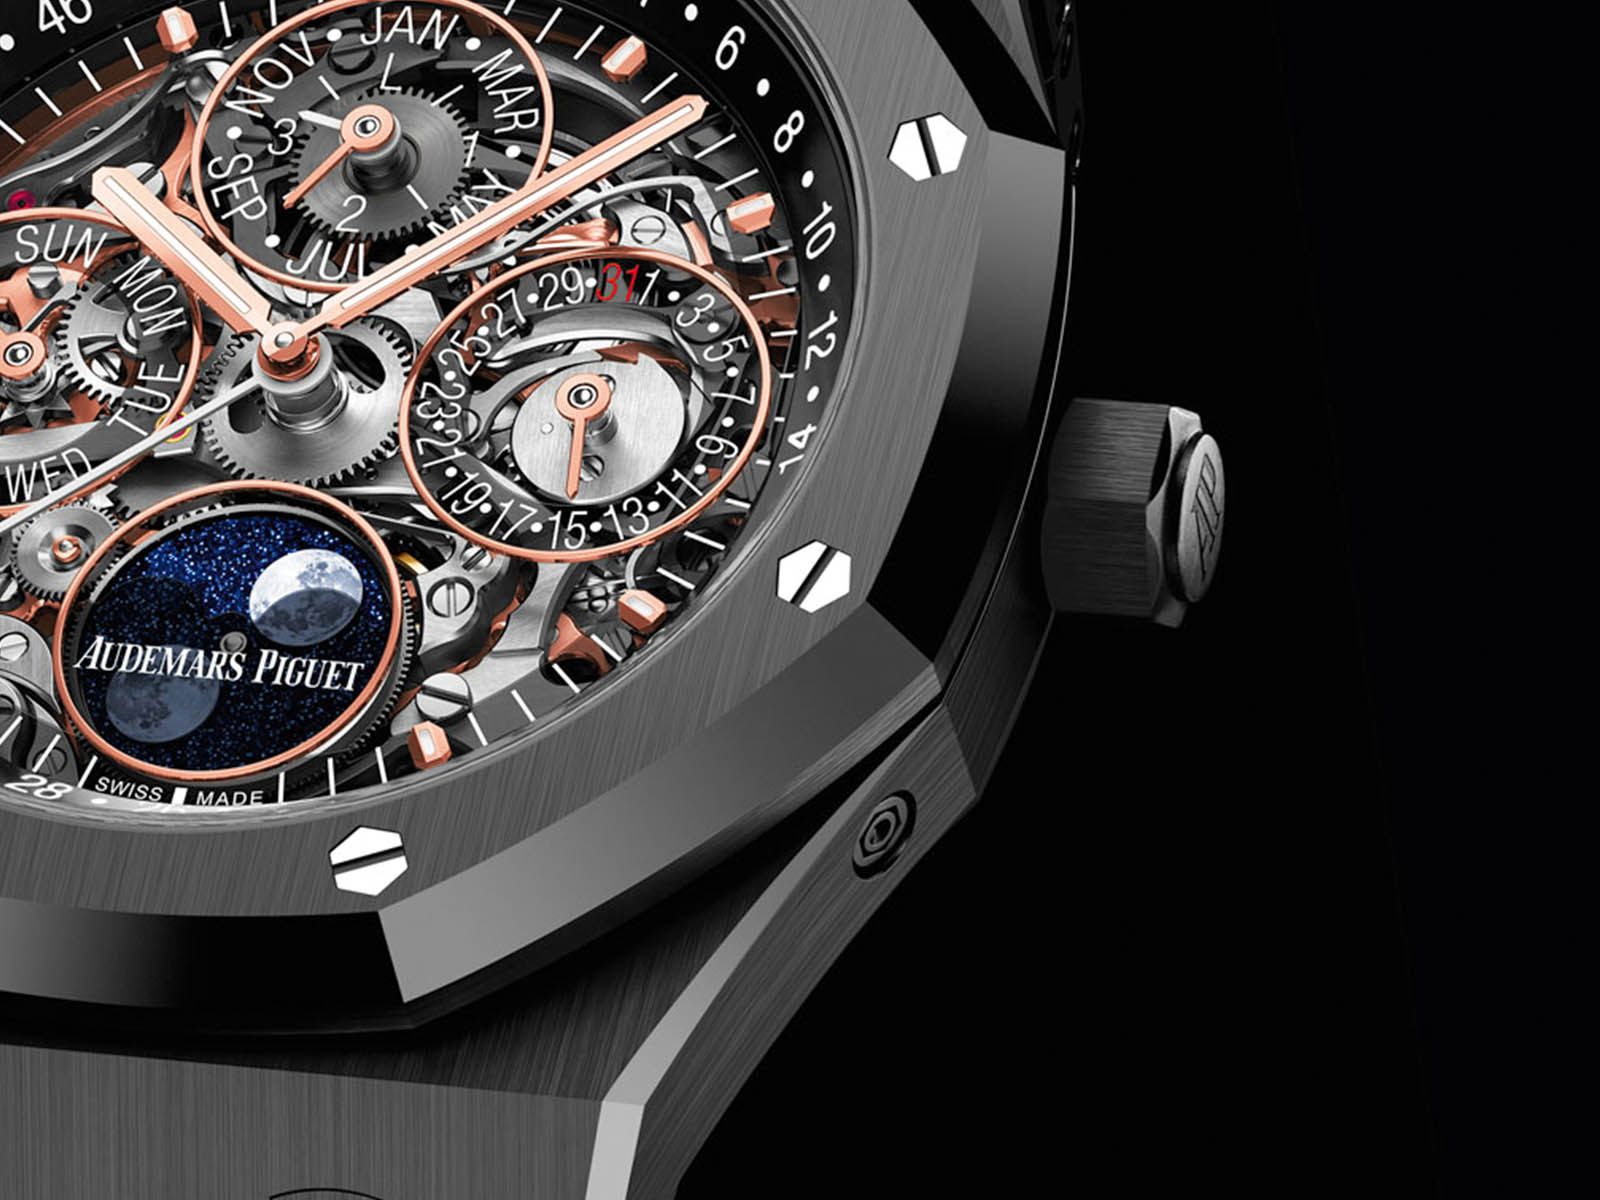 audemars-piguet-royal-oak-perpetual-calendar-ceramic-6.jpg